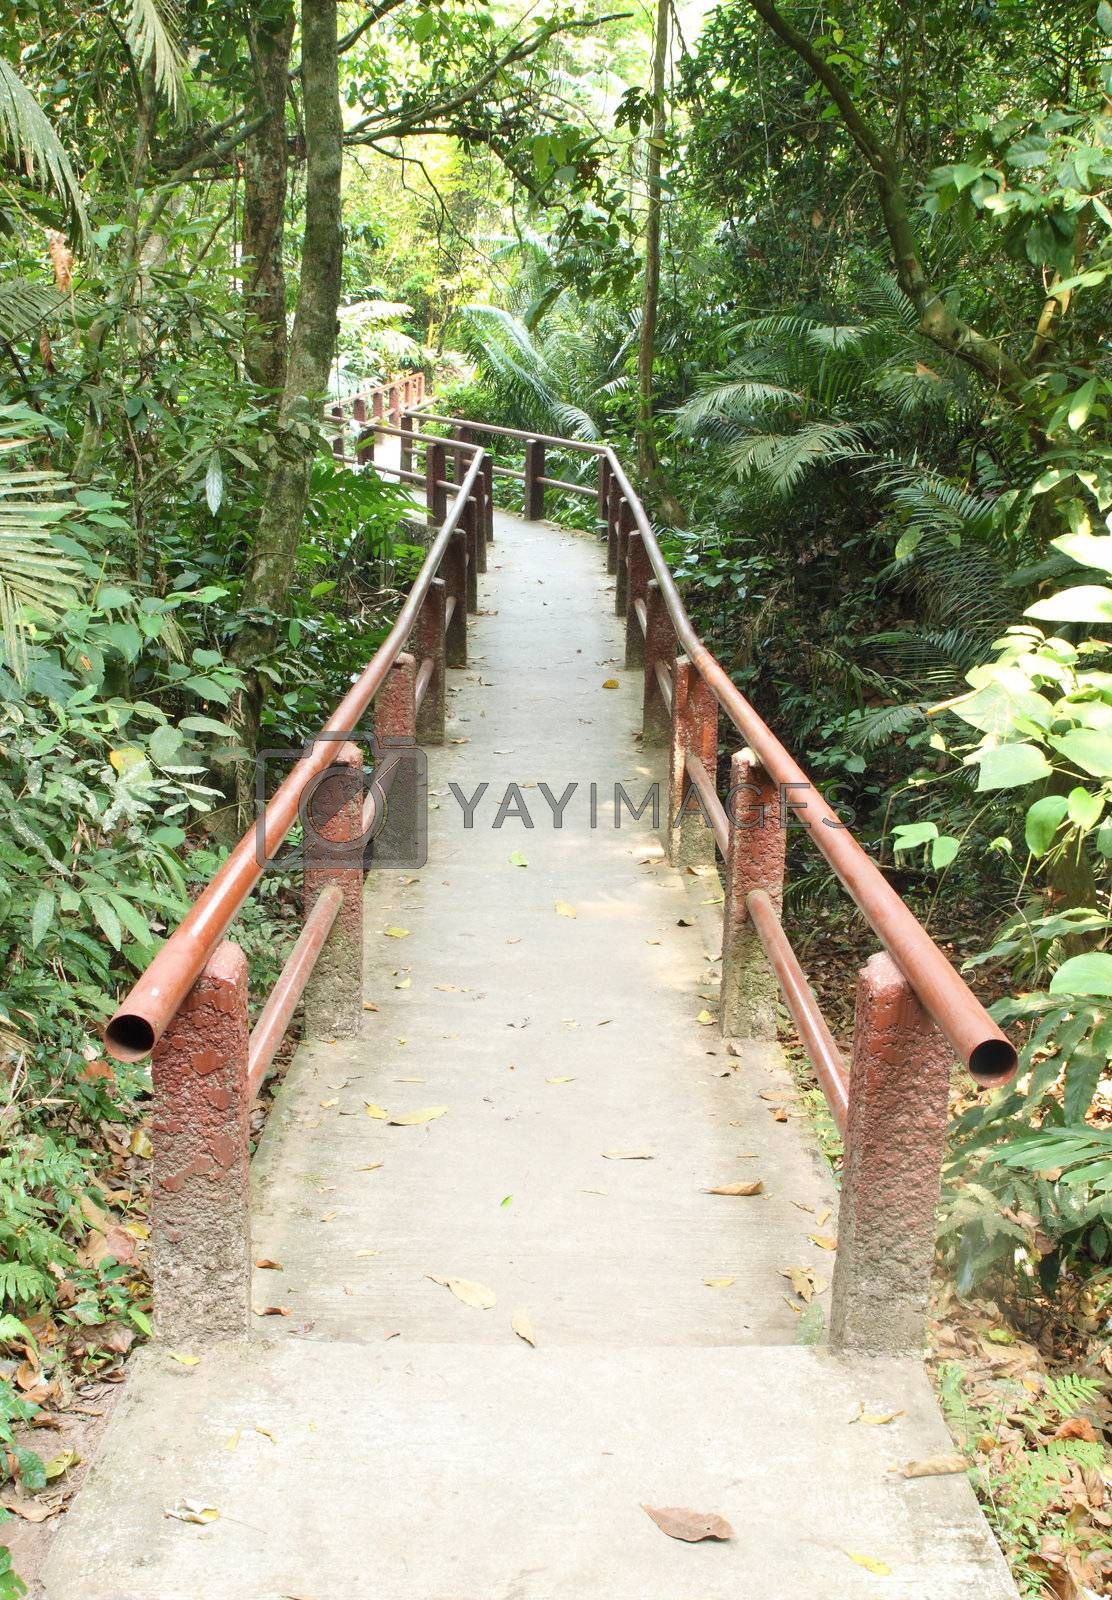 Footpath in the forest of Khao Yai national park in Thailand